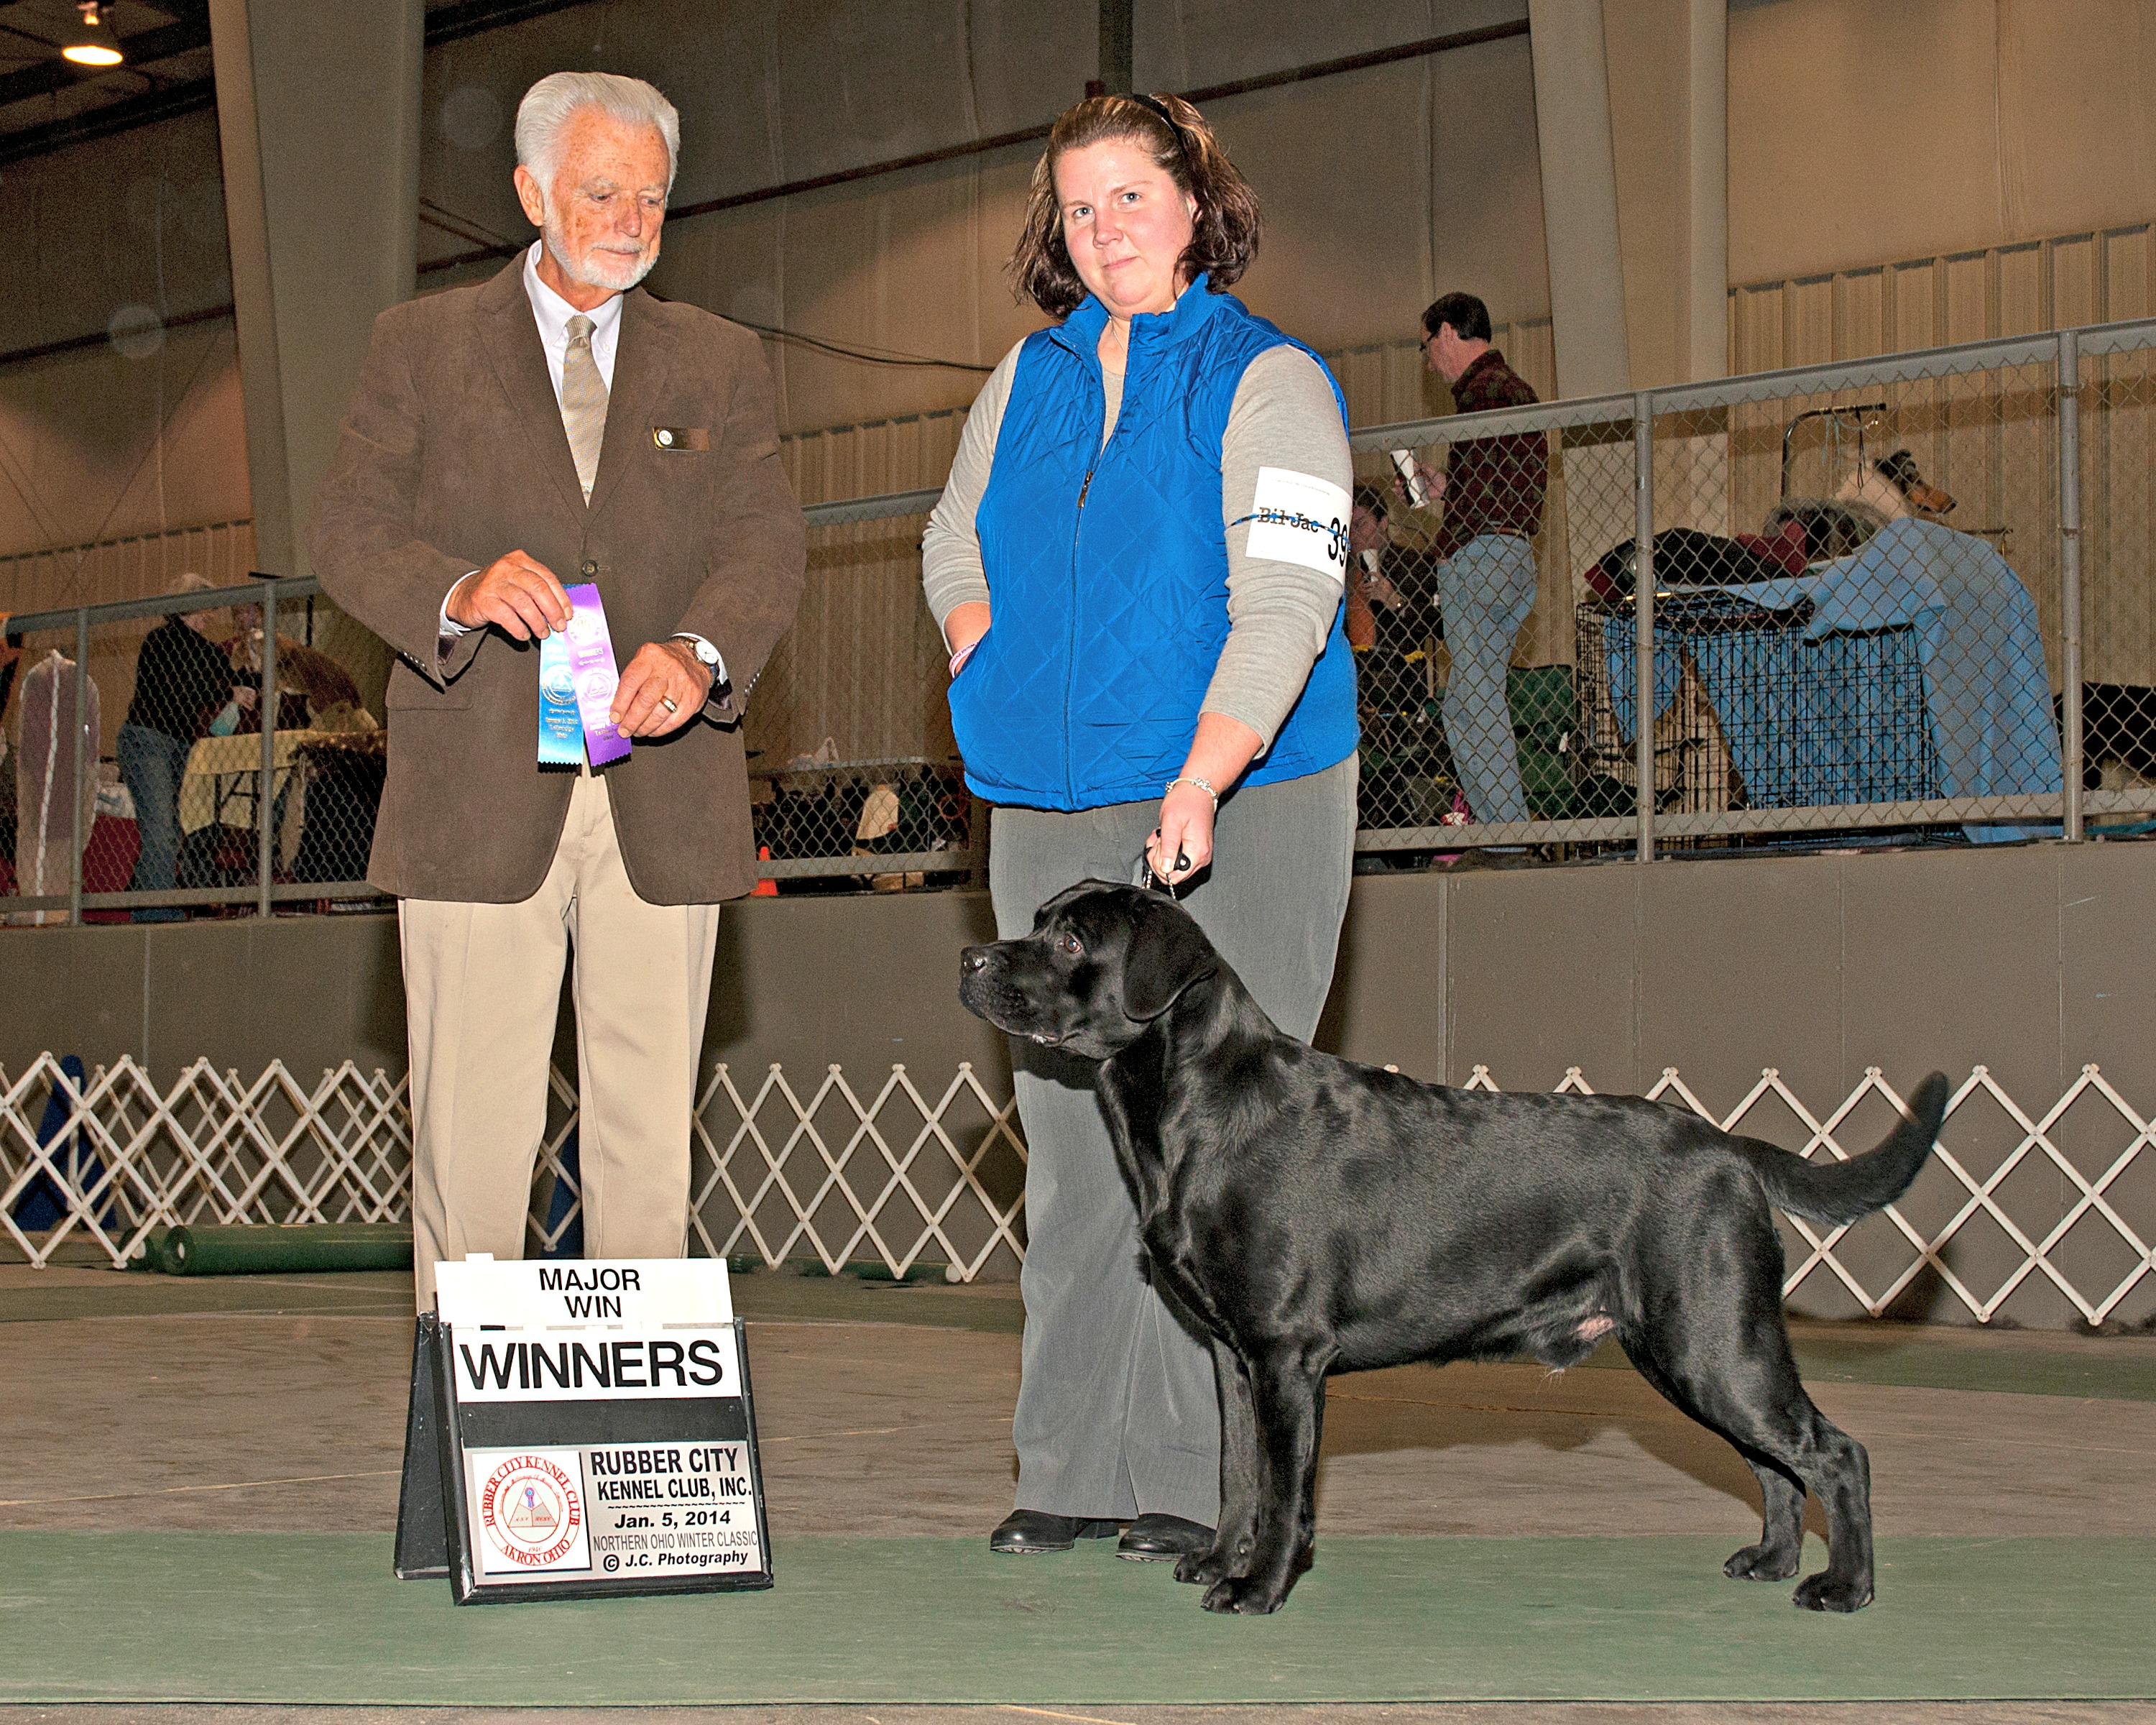 Rubber City KC - Winners Dog